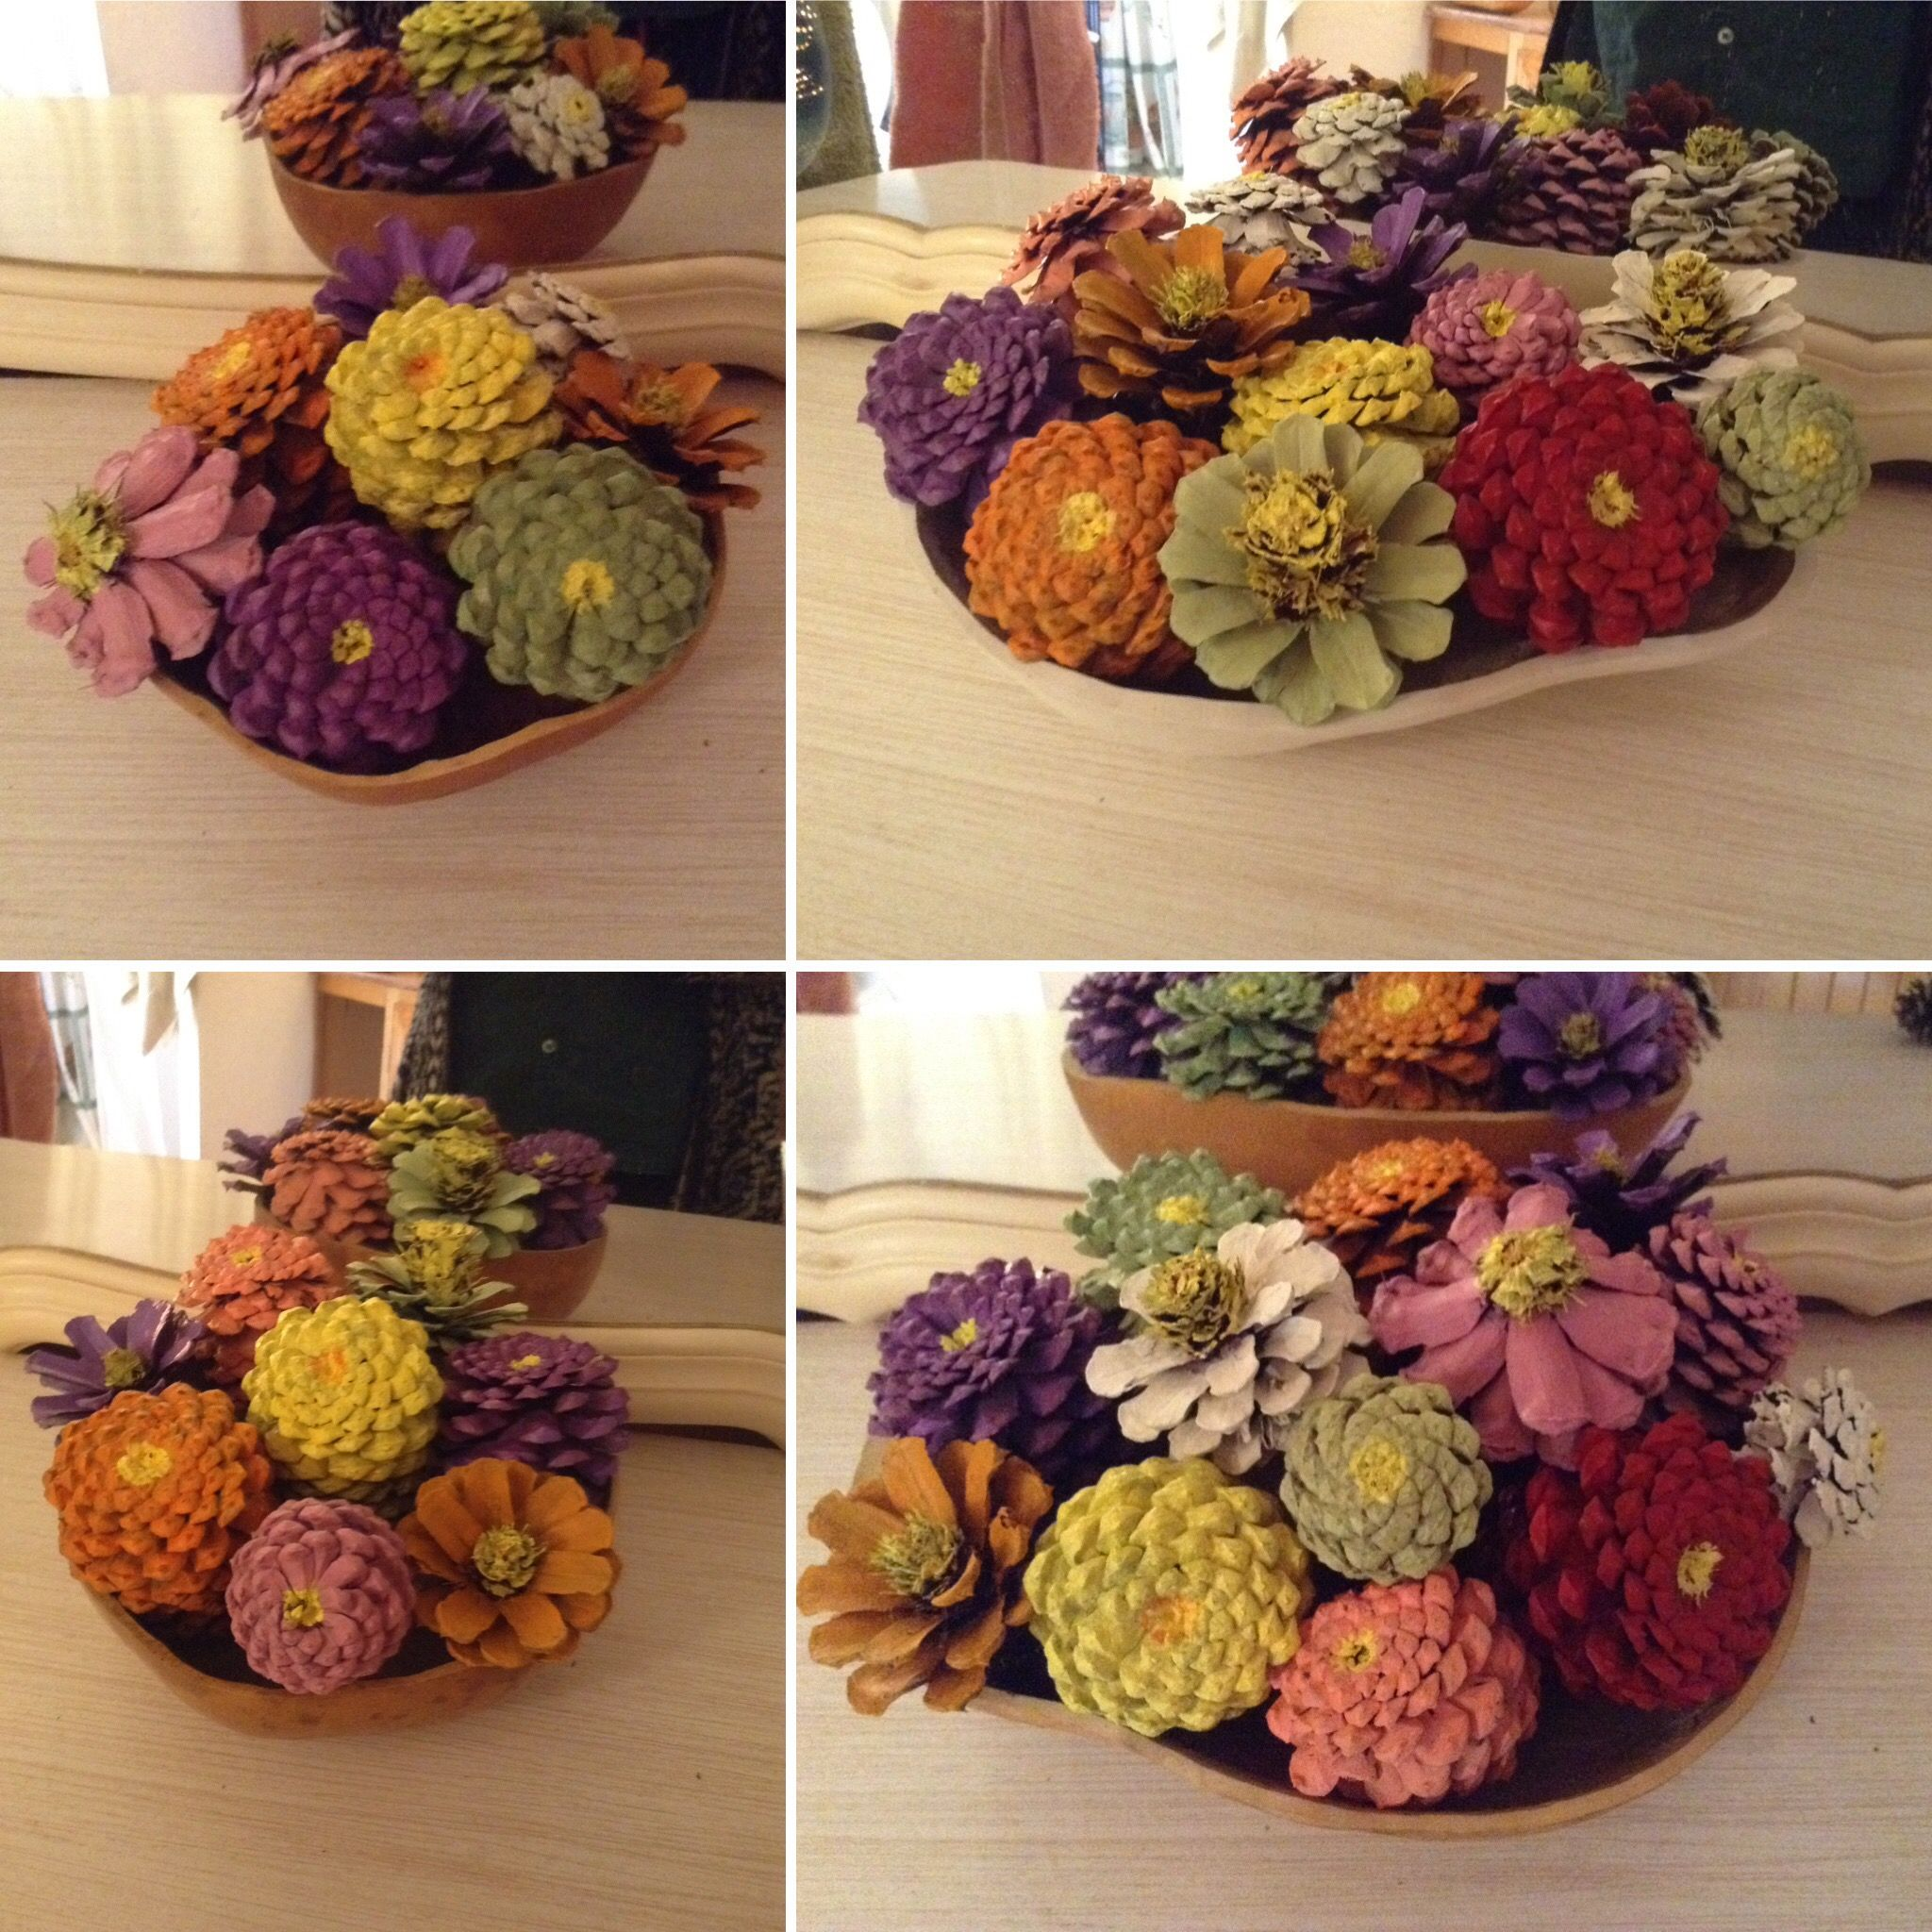 Pine Cone Flowers Displayed In Gourd Bowl Vases By Gourd Nature Artist Cathy Nyman Painted Pinecones Cones Crafts Gourd Art